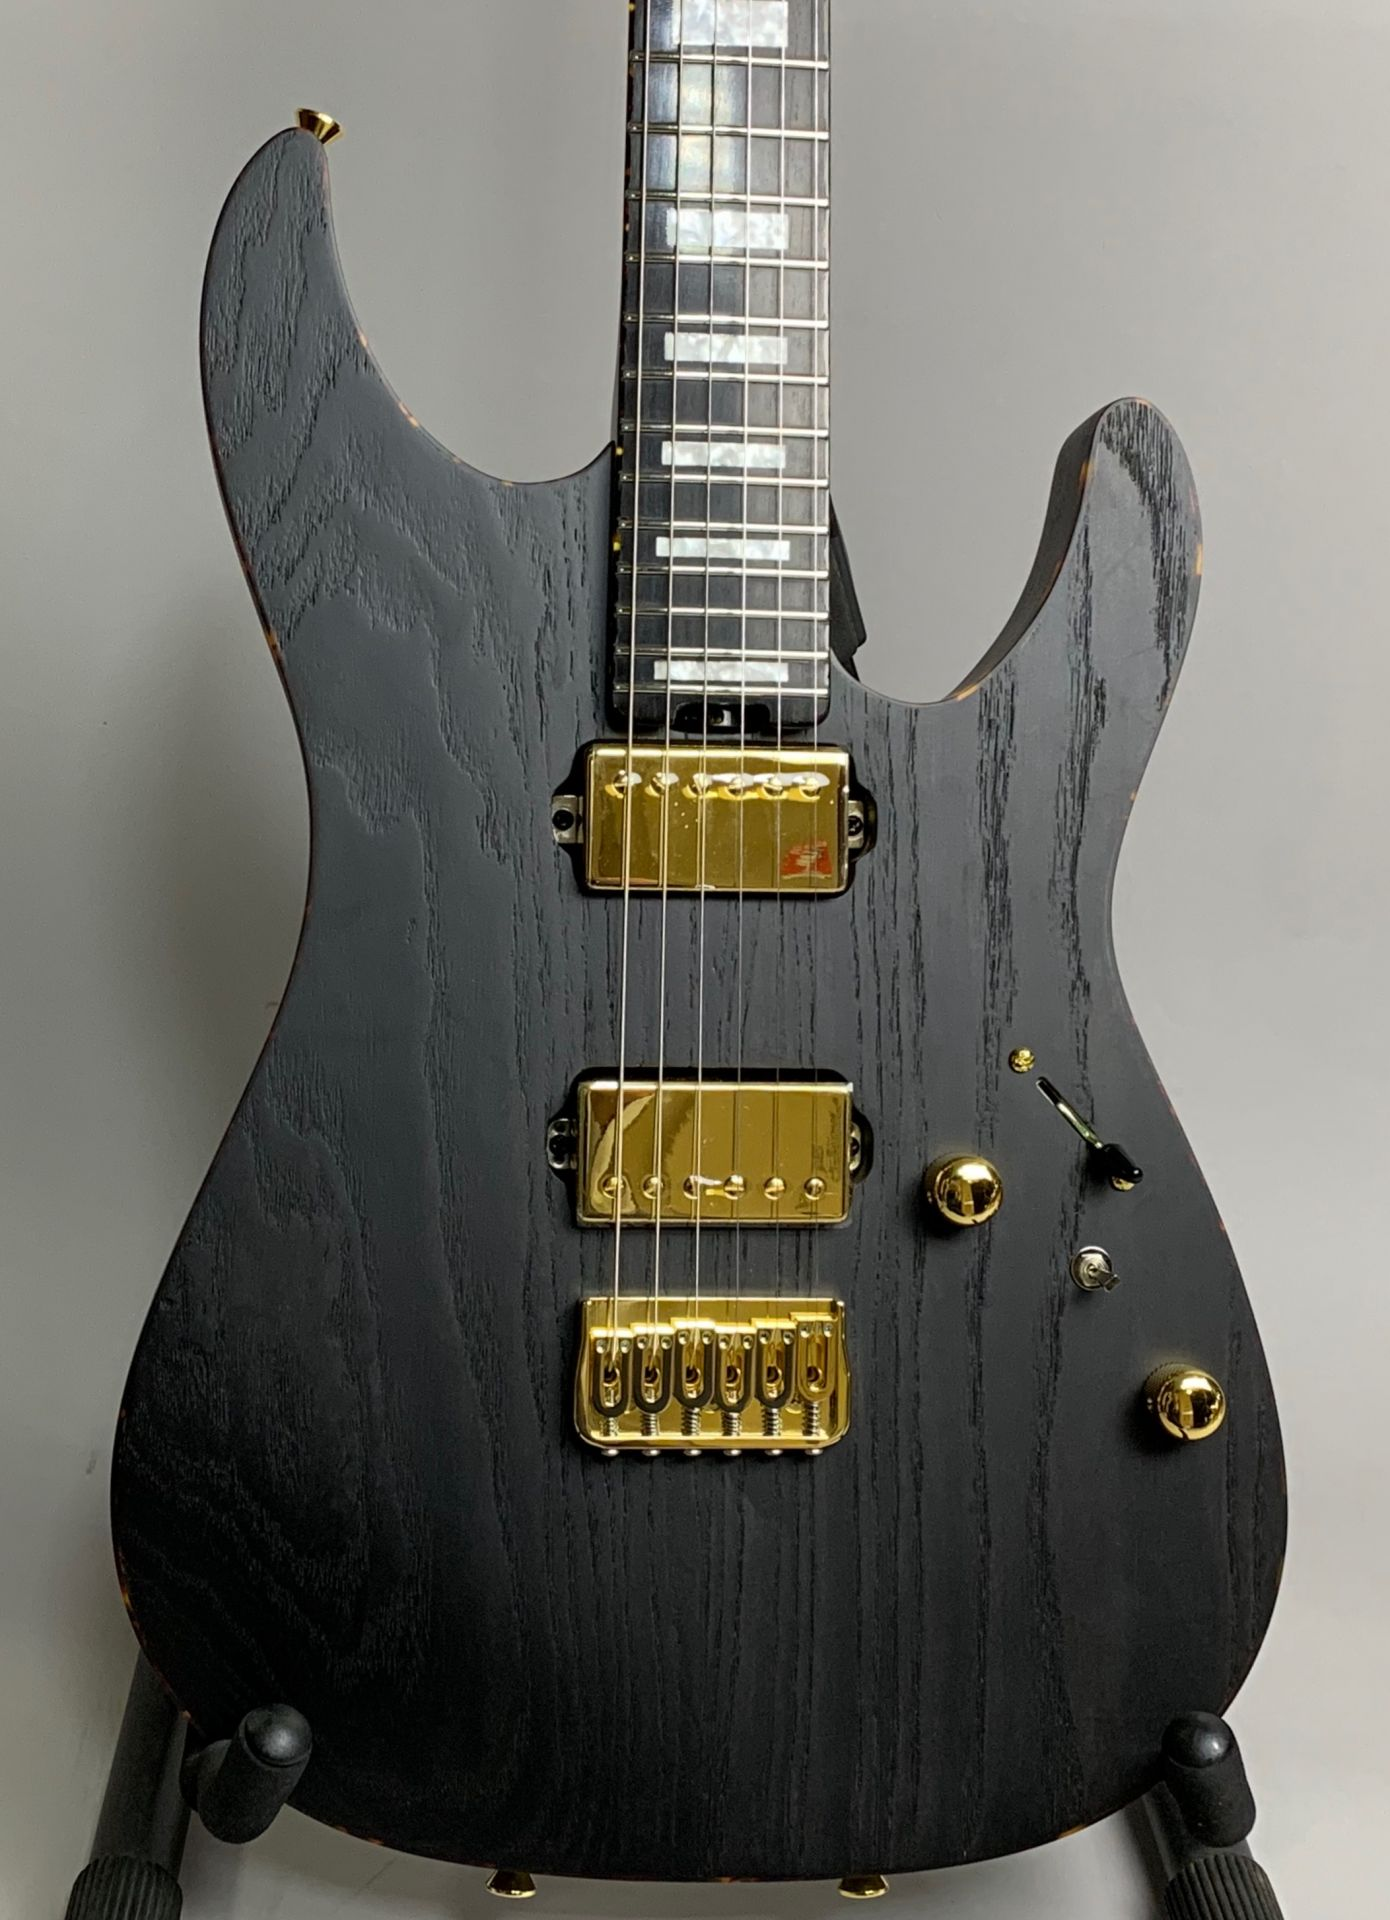 SCHECTER L-NV-3-24-AS-2H-FXD/E Carbon Tint【限定モデル】 Carbon Tint